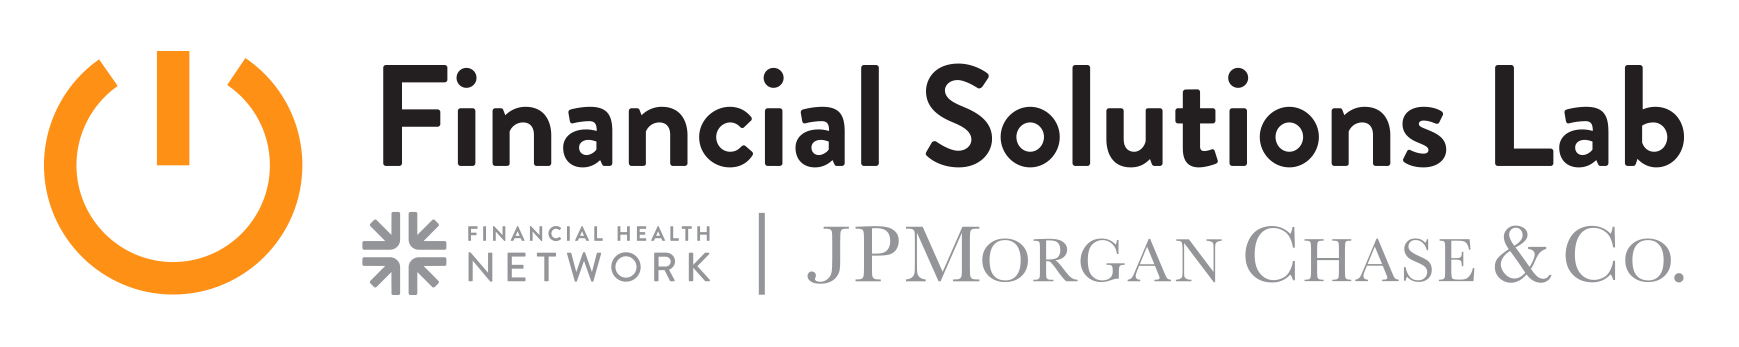 Financial Solutions Lab - the Financial Health Network | JP Morgan Chase & Co.